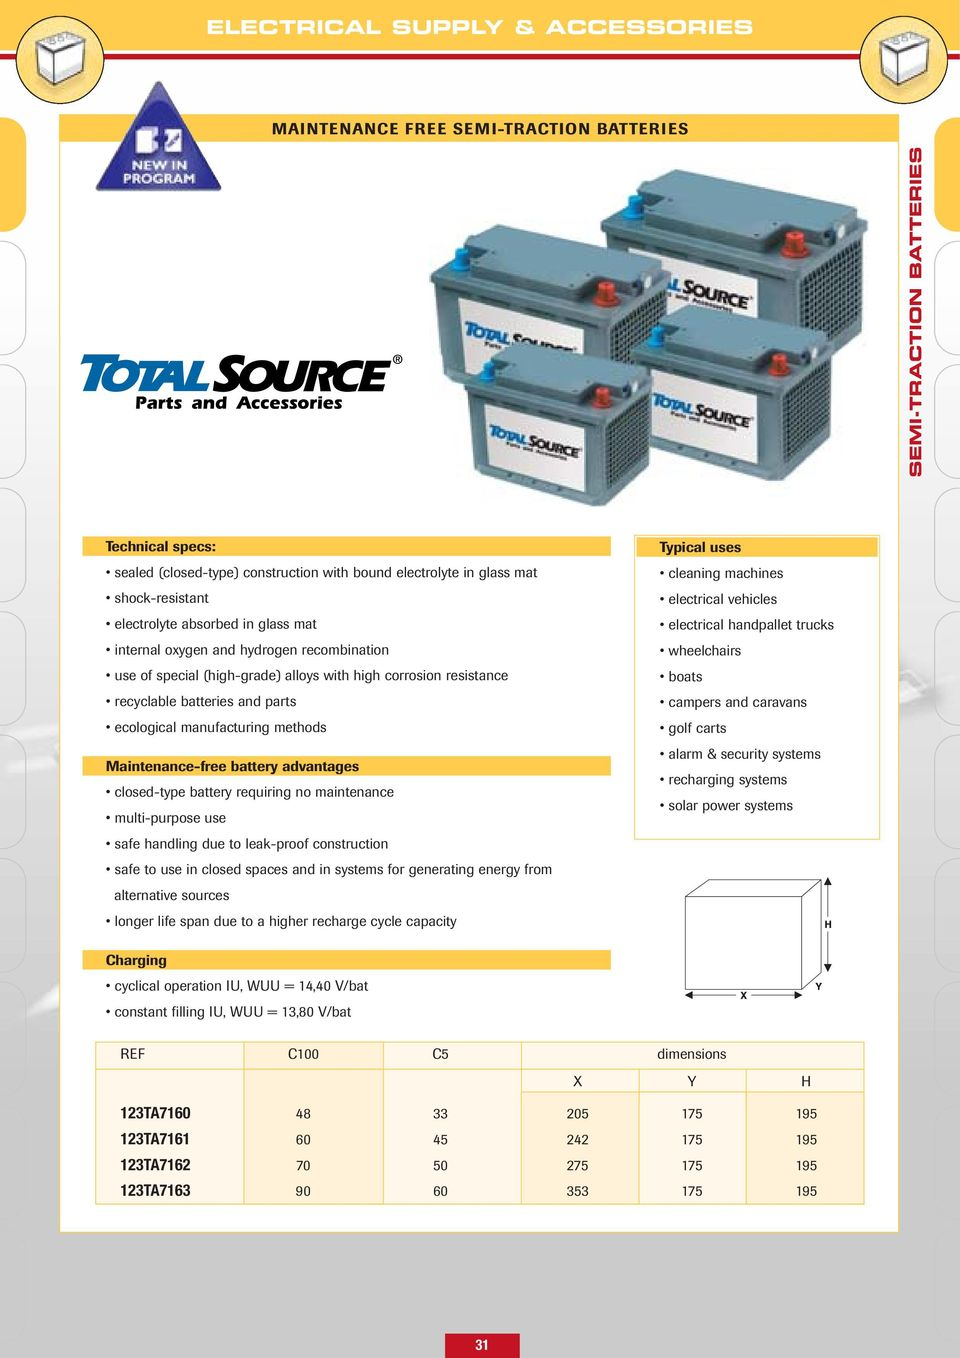 Electrical Supply Accessories Batteries Pdf Wiring Diagram For Stand Alone Charger Oil Kit Battery Advantages Closed Type Requiring No Maintenance Multi Purpose Use Safe Handling Due